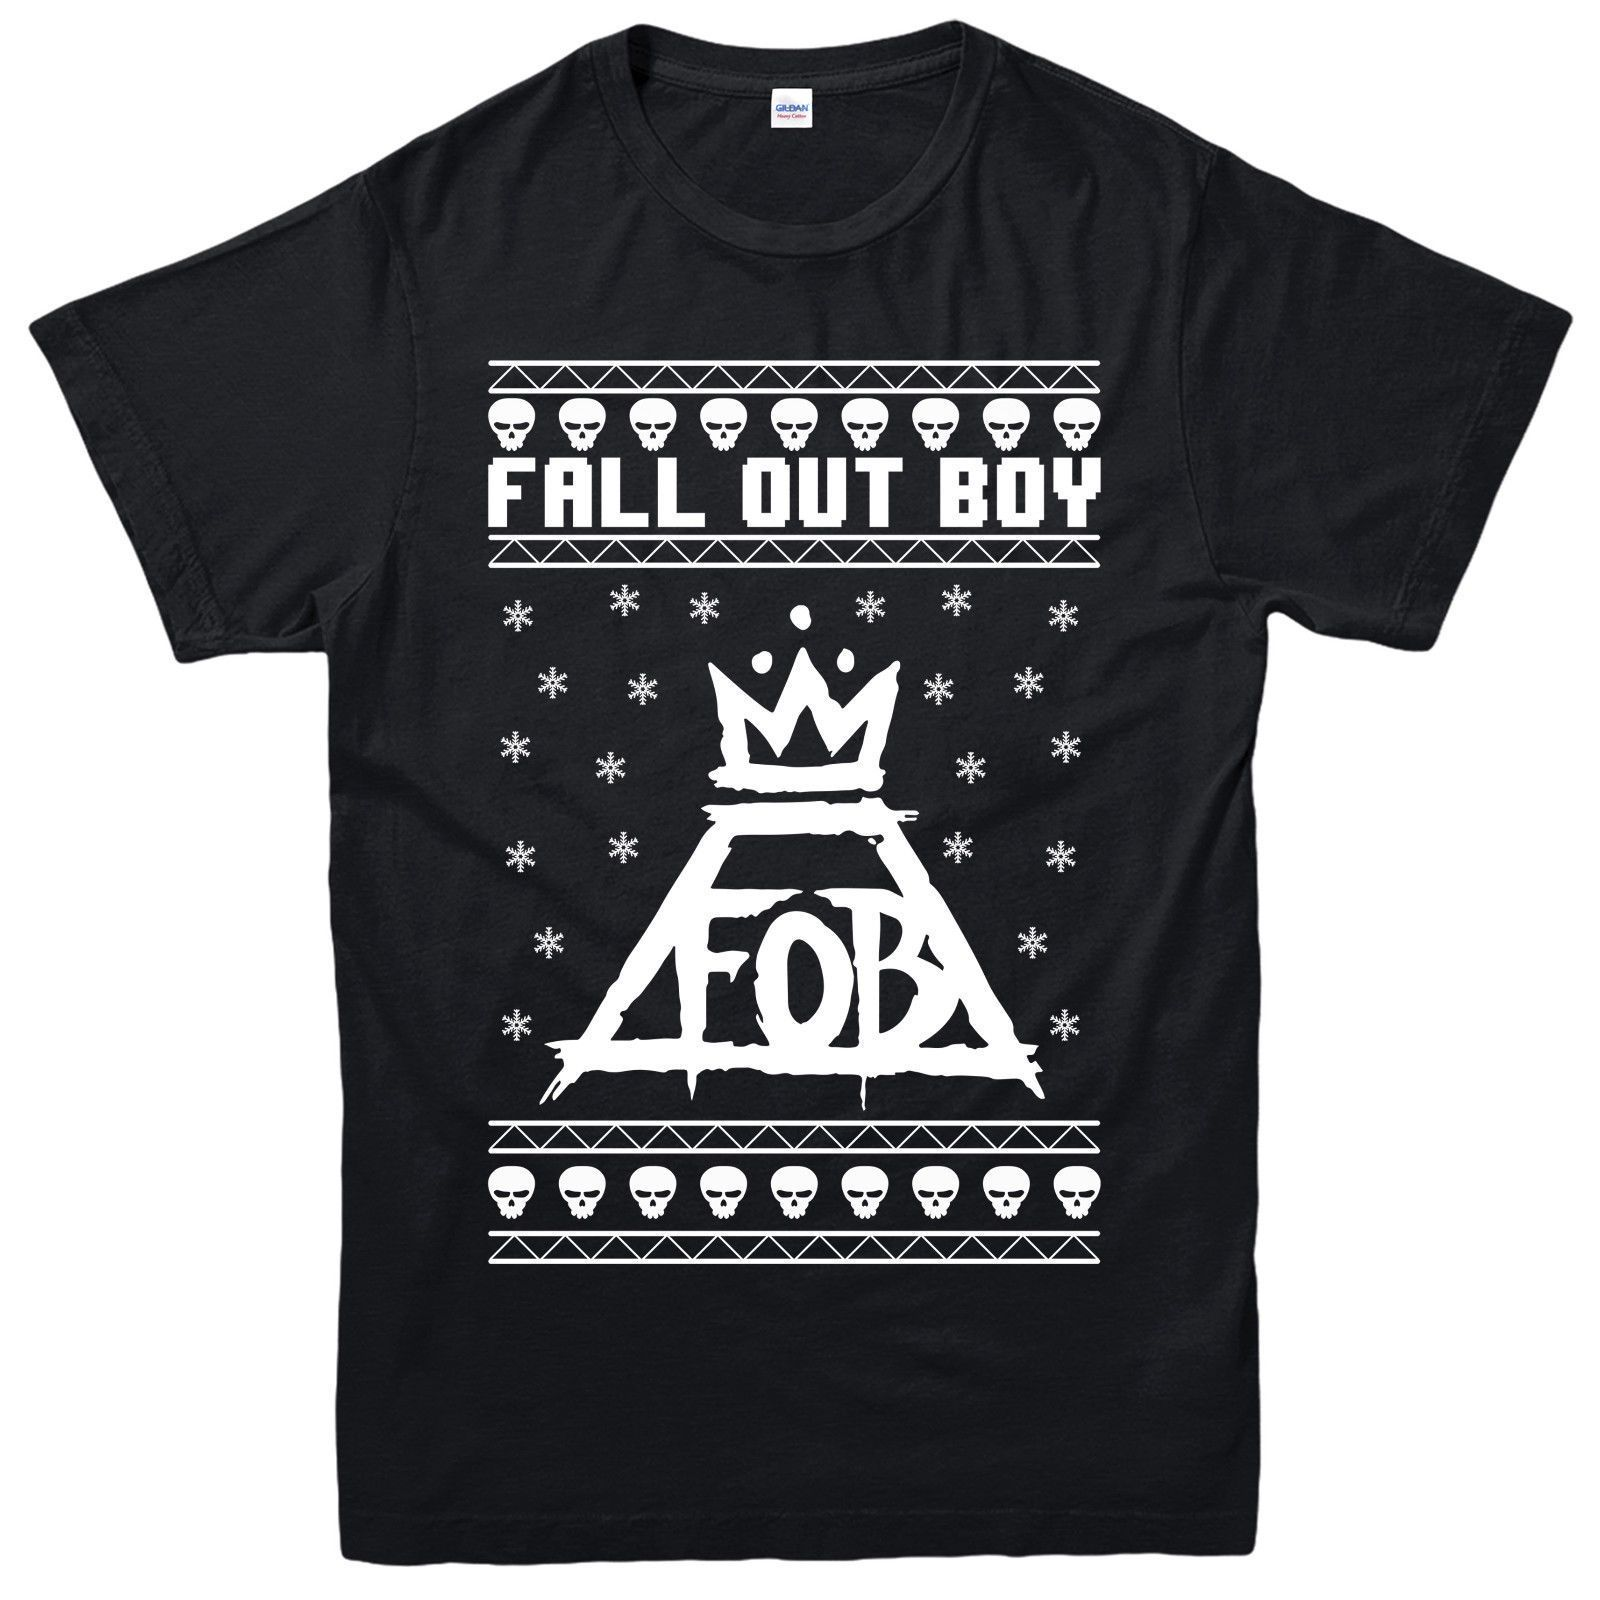 FOB Fall Out Boy Logo - Fall Out Boy Christmas T-Shirt FOB Logo Festive Xmas Gift Adult Kids ...